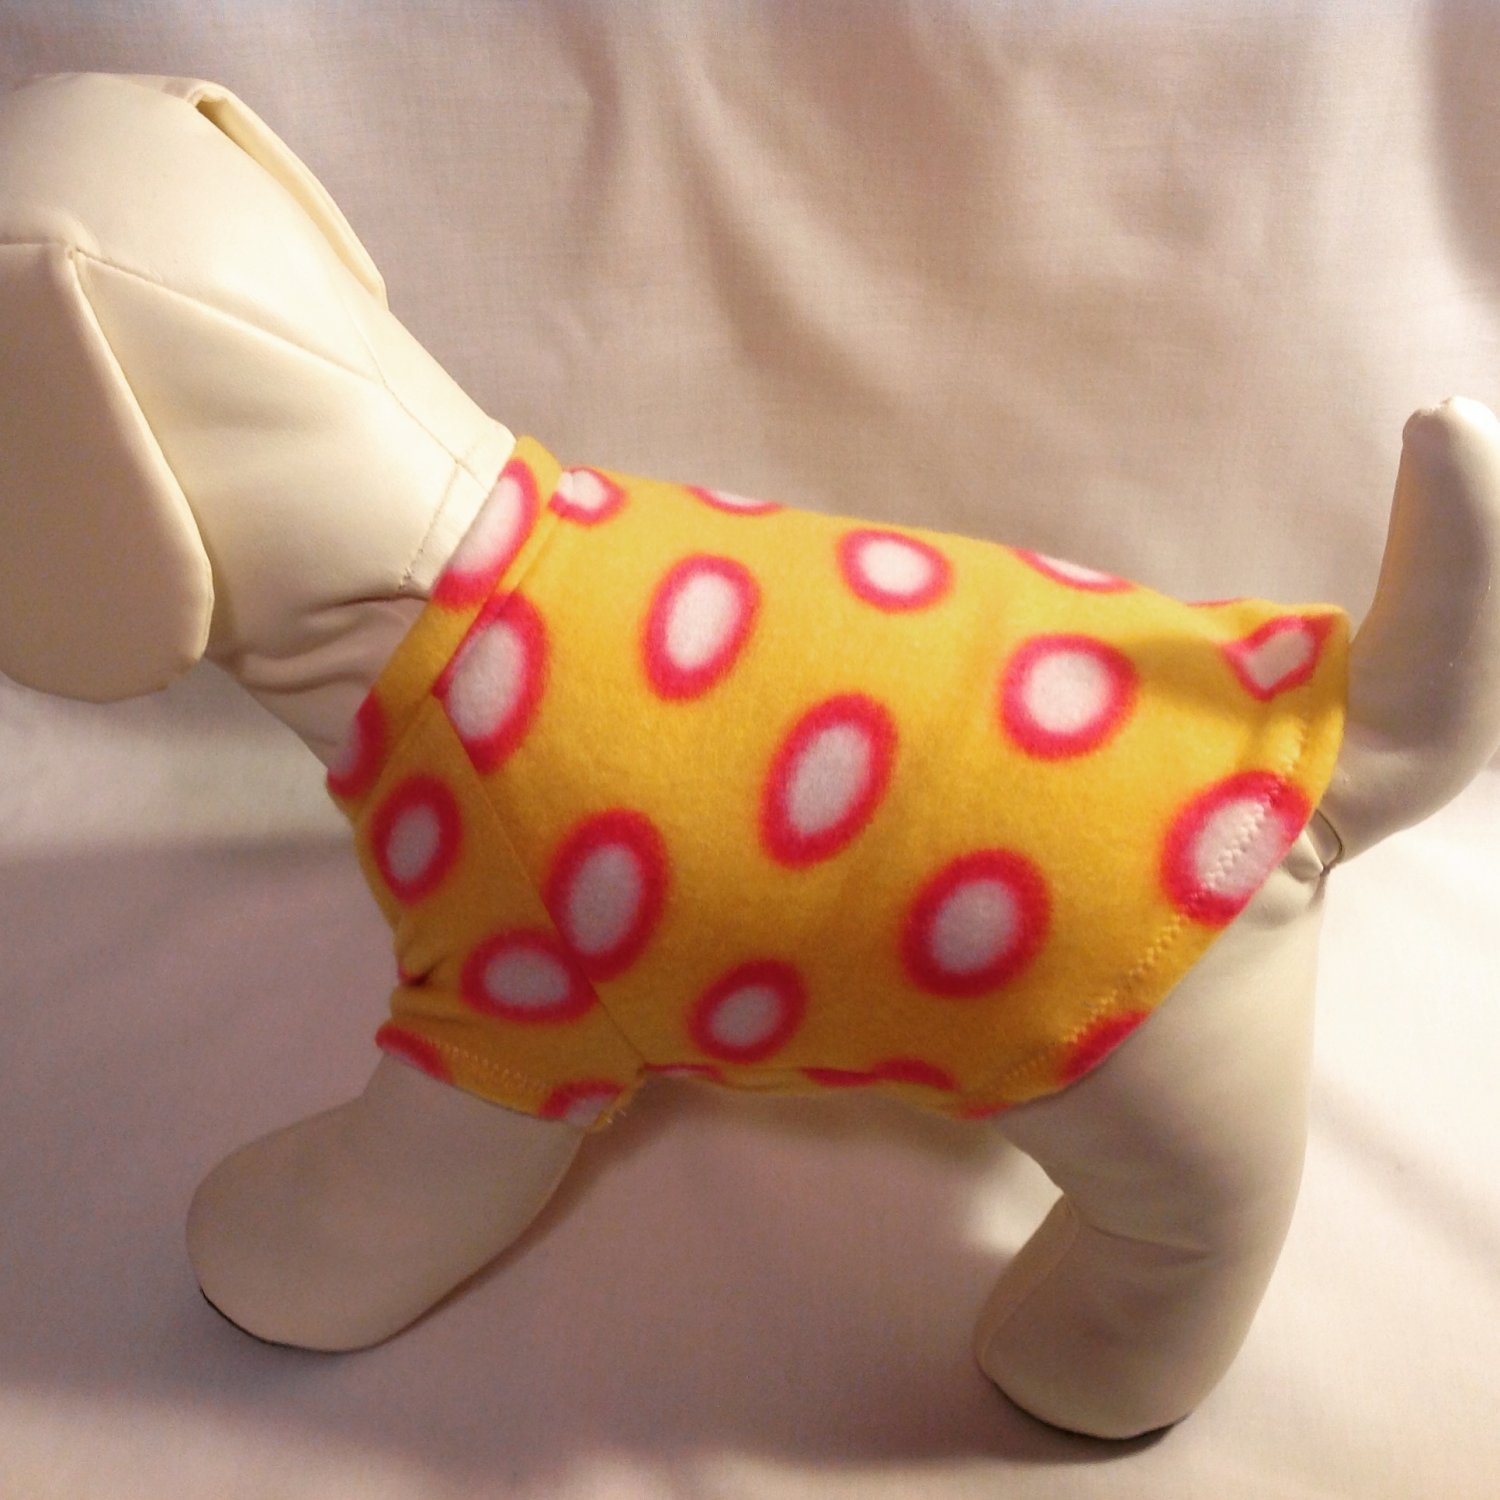 dog shirt SMALL yellow with dots dog shirts fleece sweater sweatshirt puppy